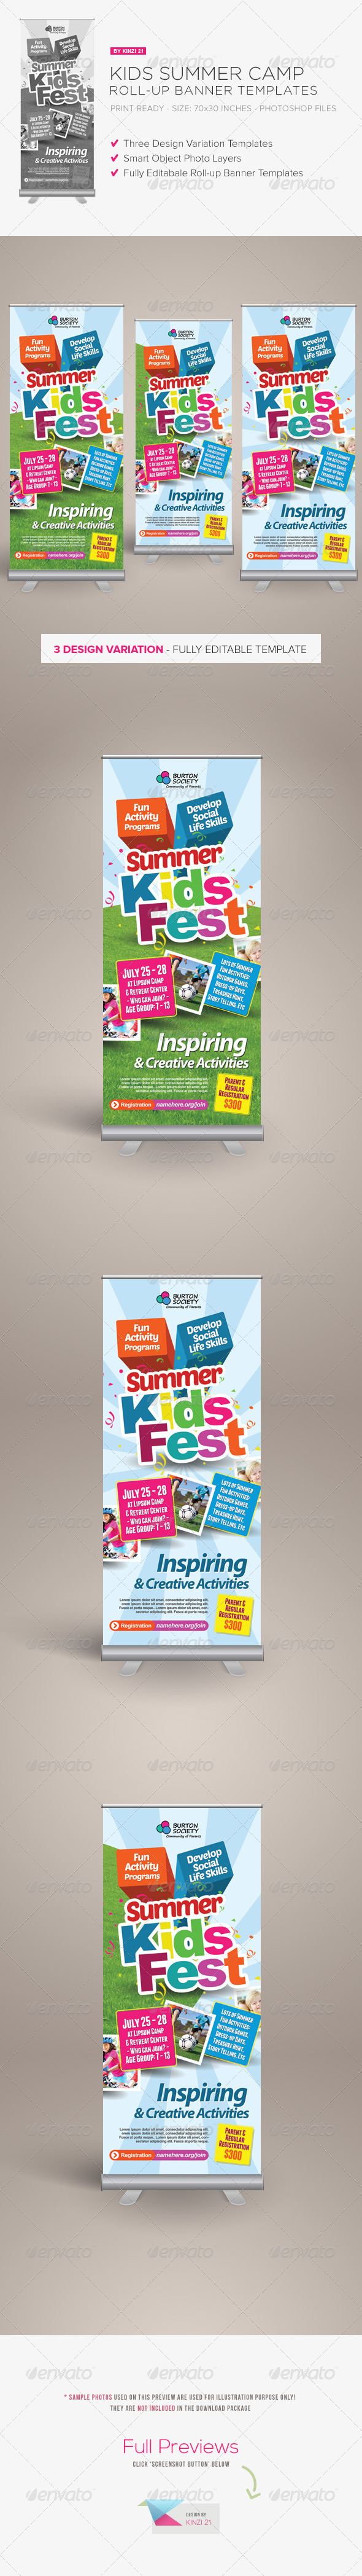 GraphicRiver Kids Summer Camp Roll-up Banners 7828570